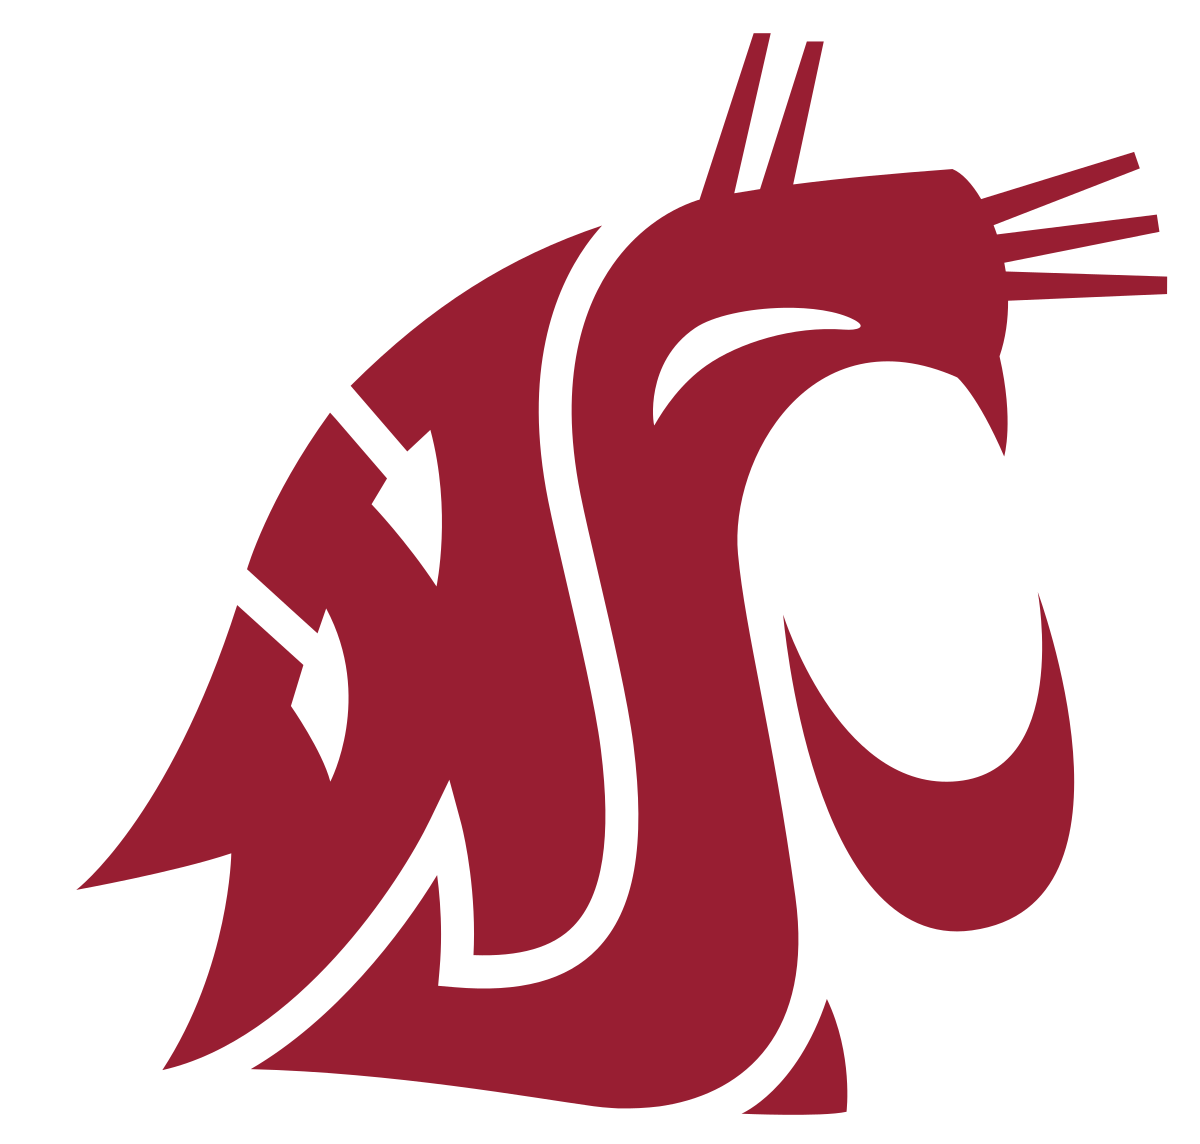 Twin valley football clipart vector royalty free download Washington State Cougars - Wikipedia vector royalty free download